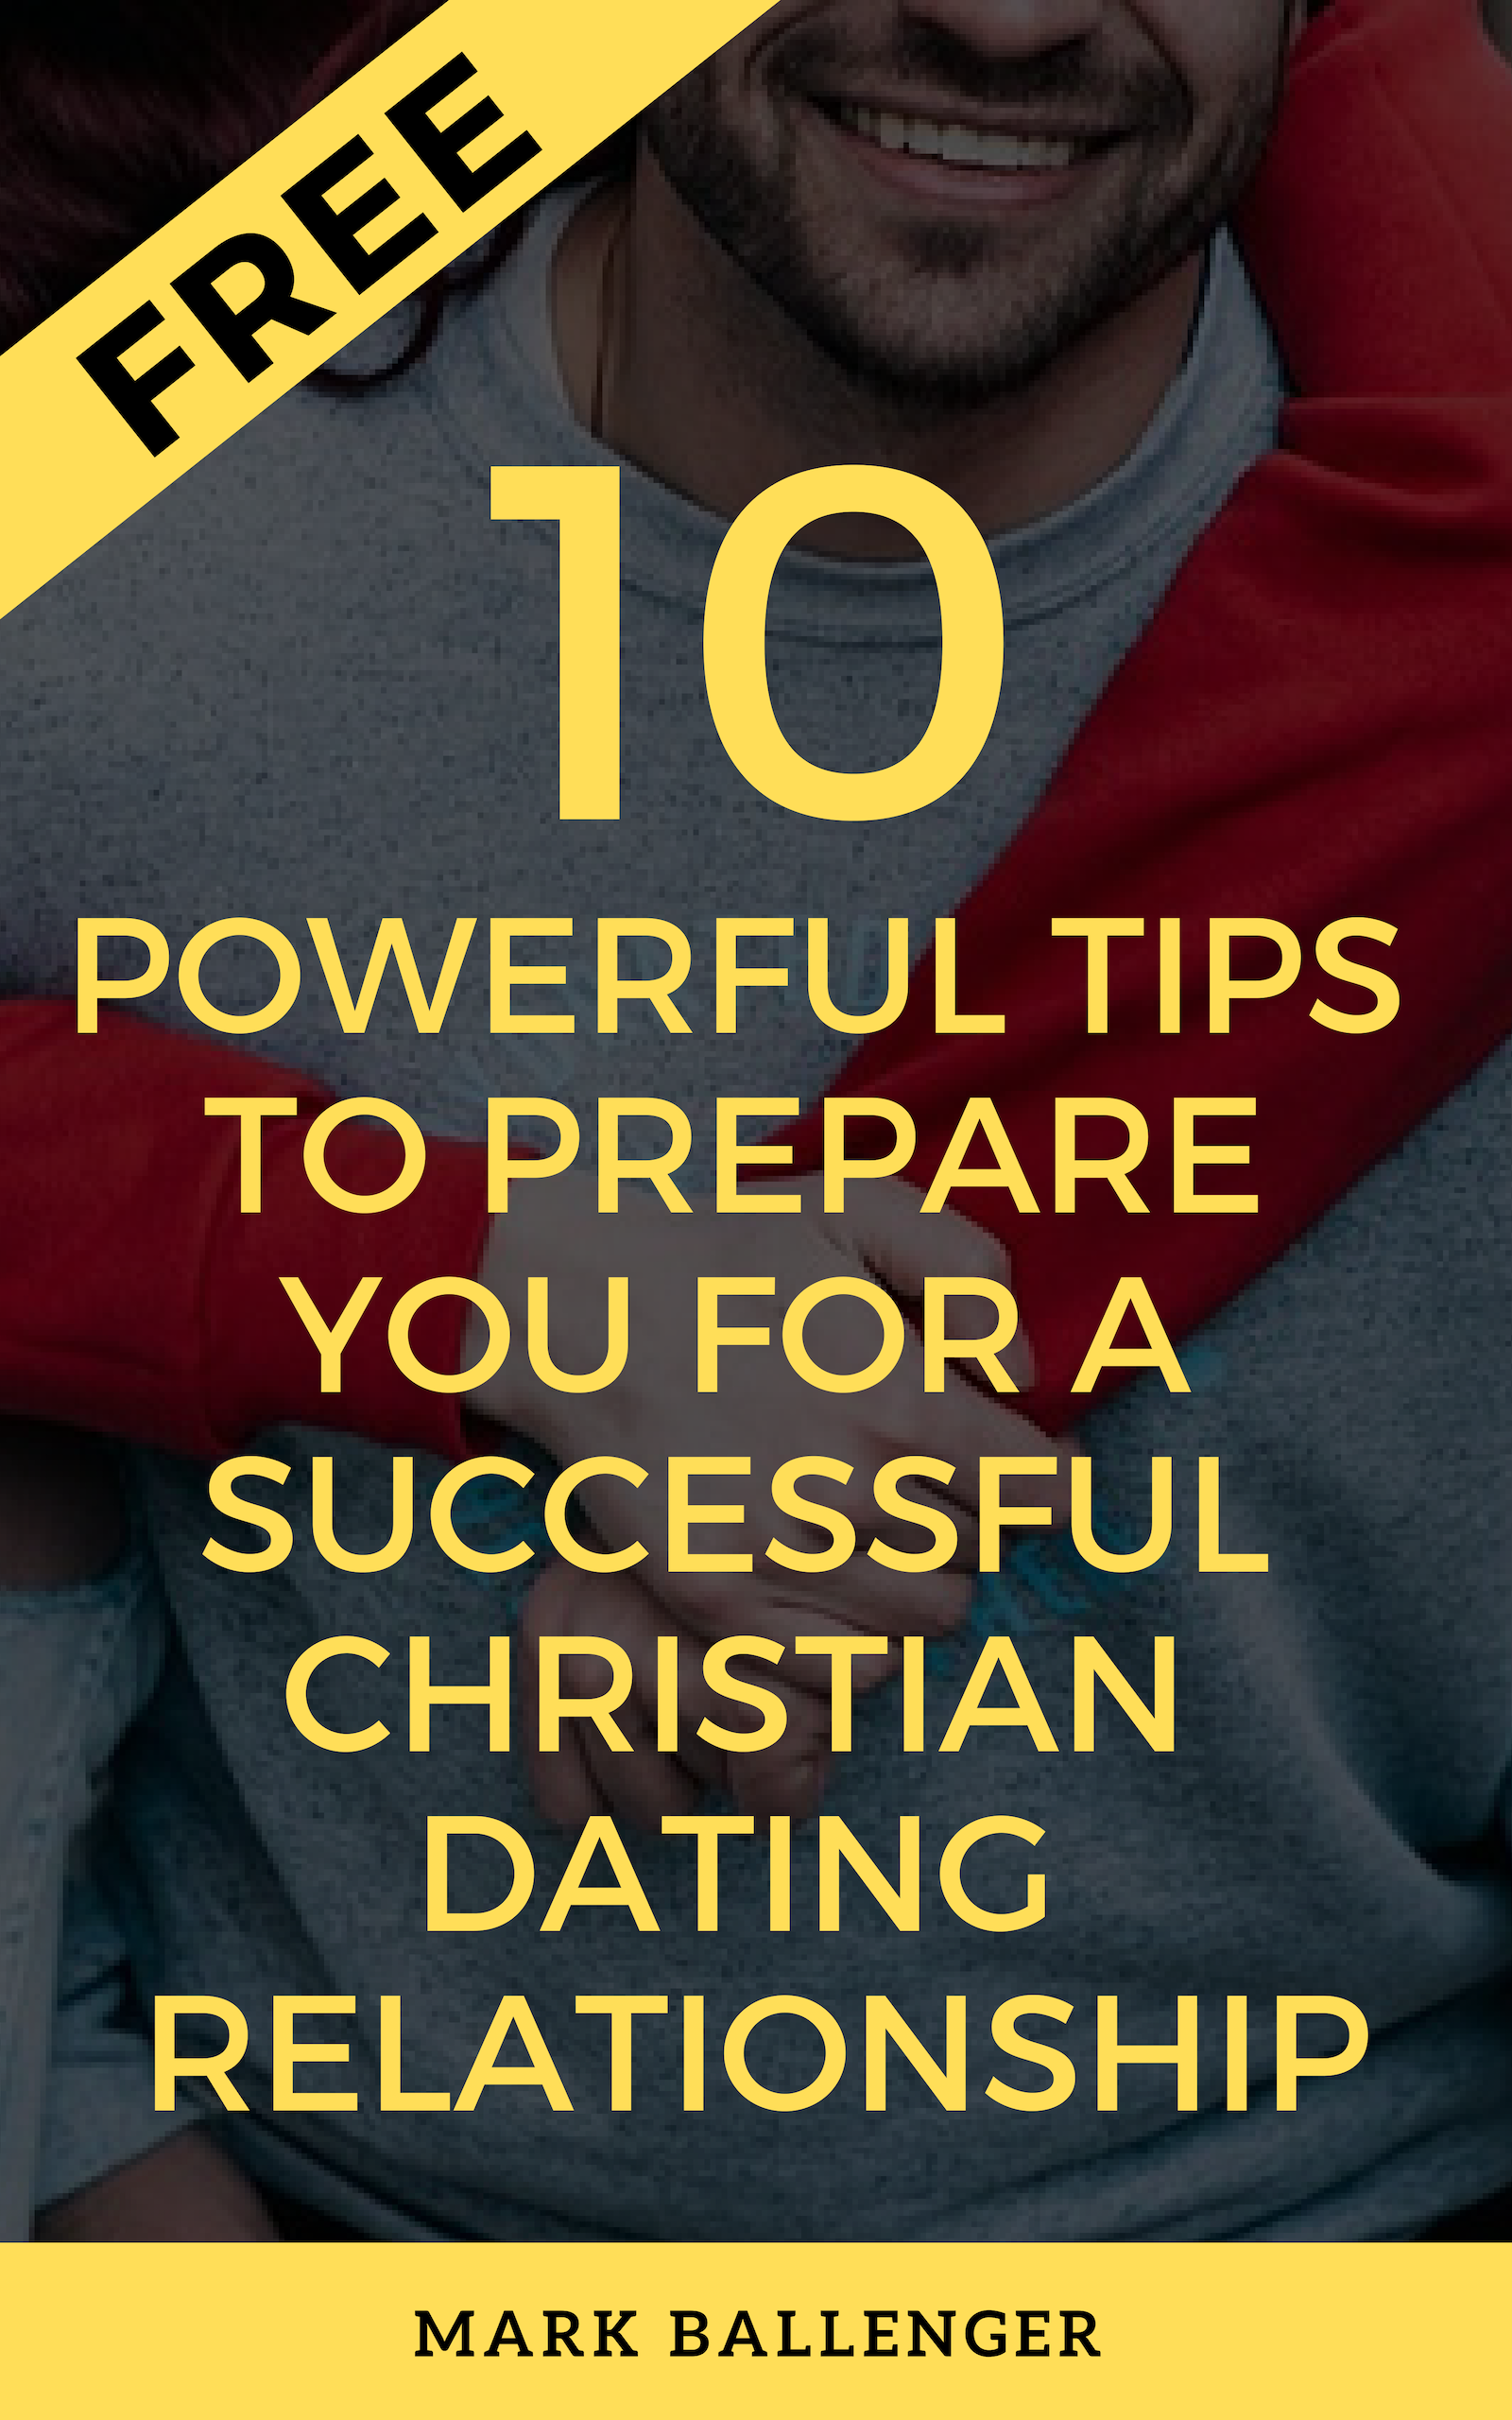 10 powerful tips to prepare for a successful christian dating relationship